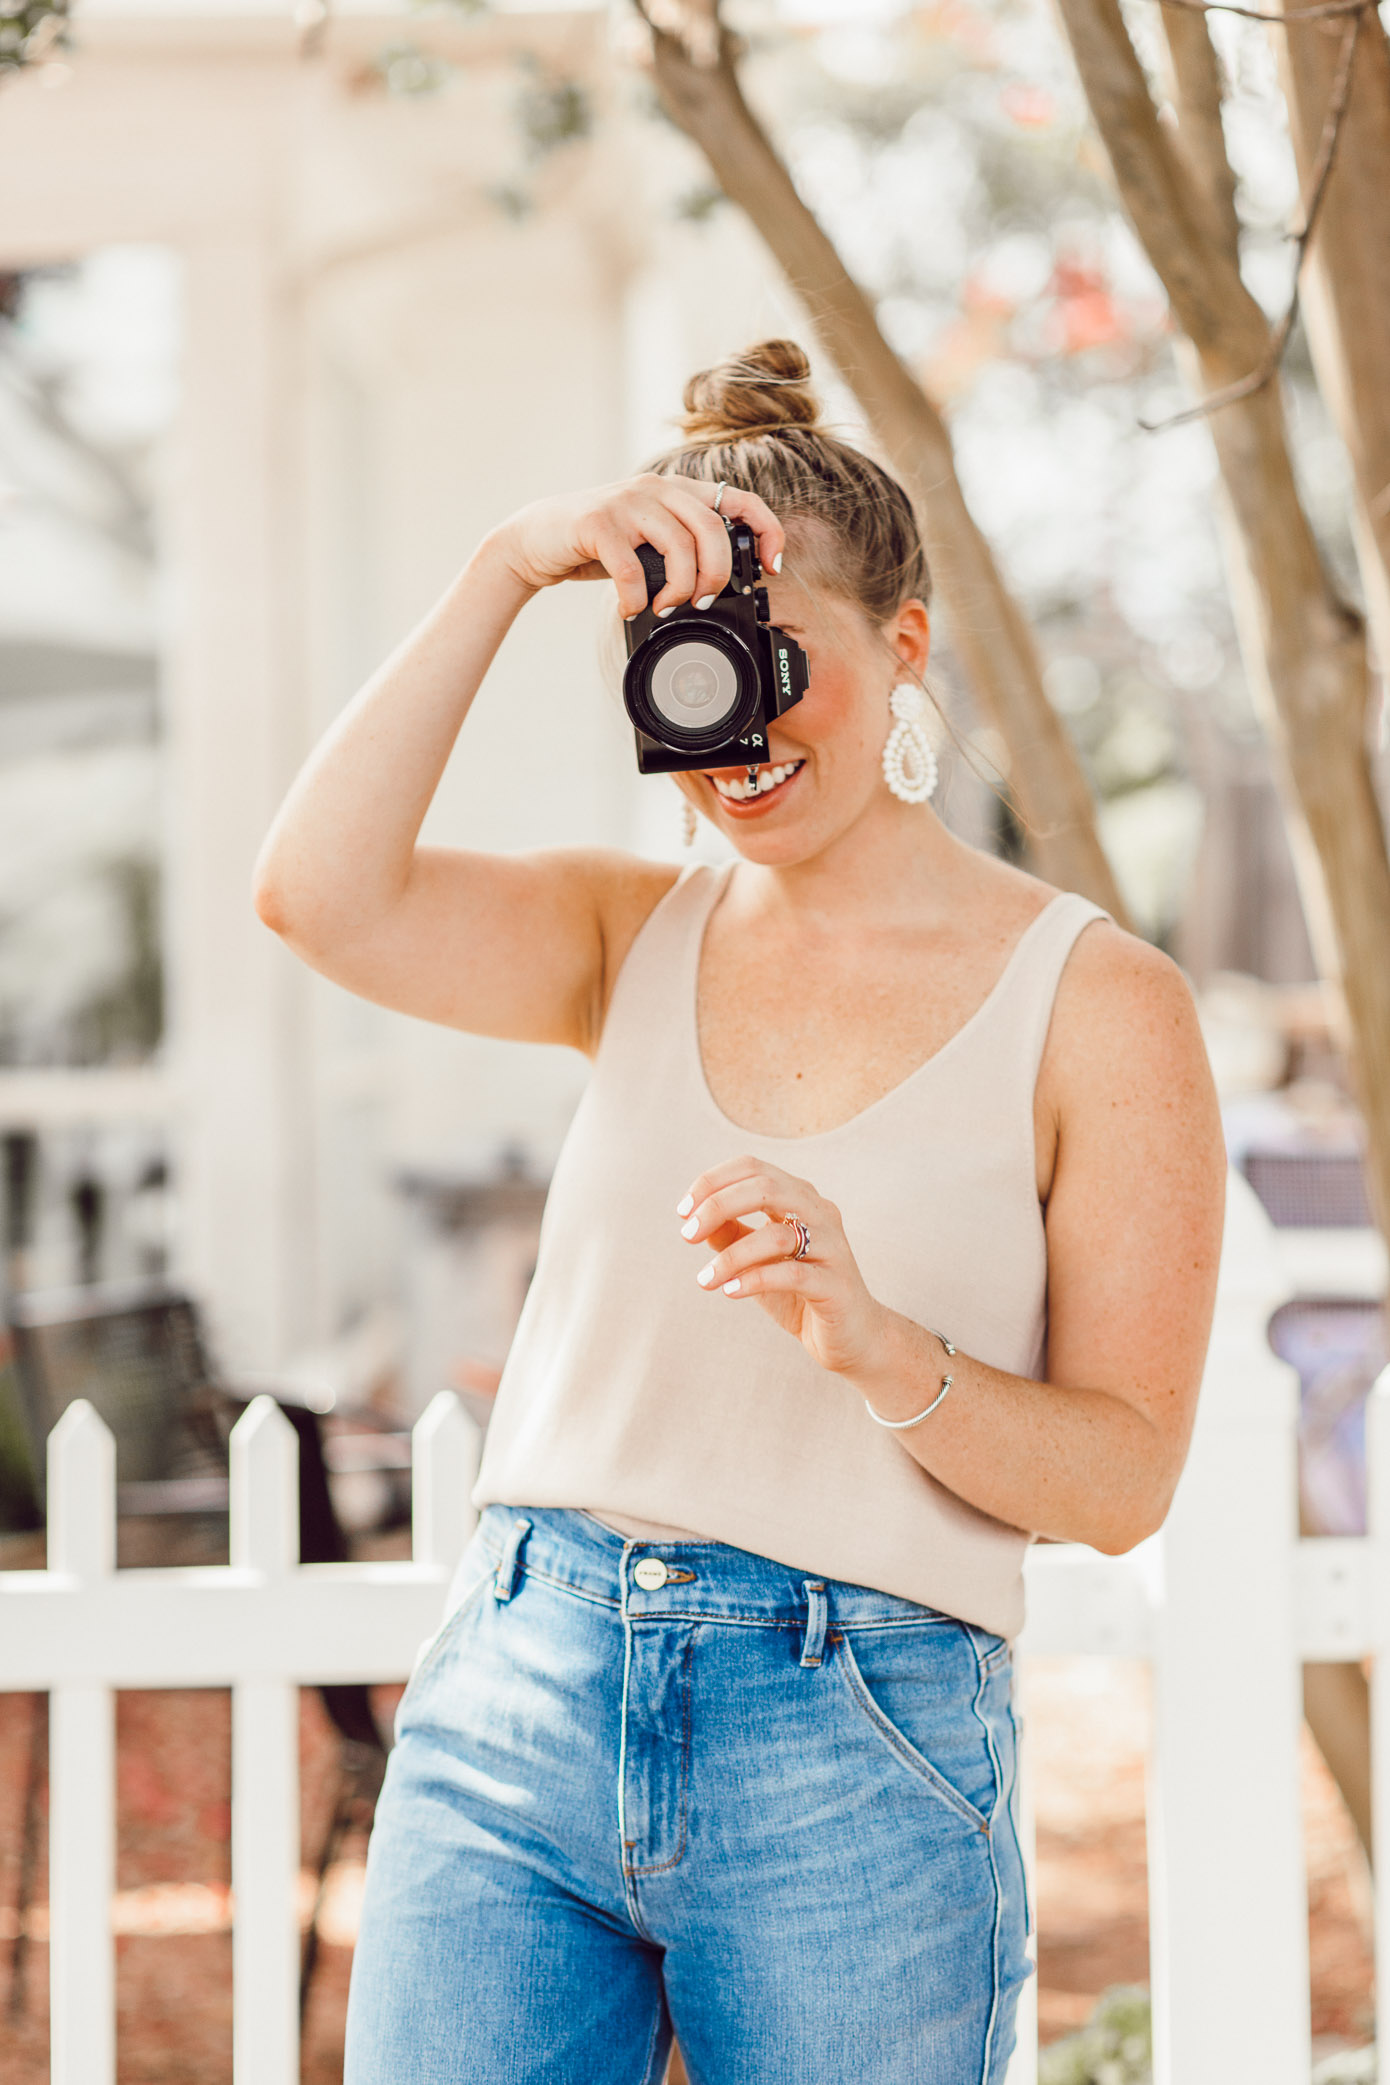 Blogger Photo Editing Tips | How to Find Your Blog Photo Aesthetic featured on Louella Reese